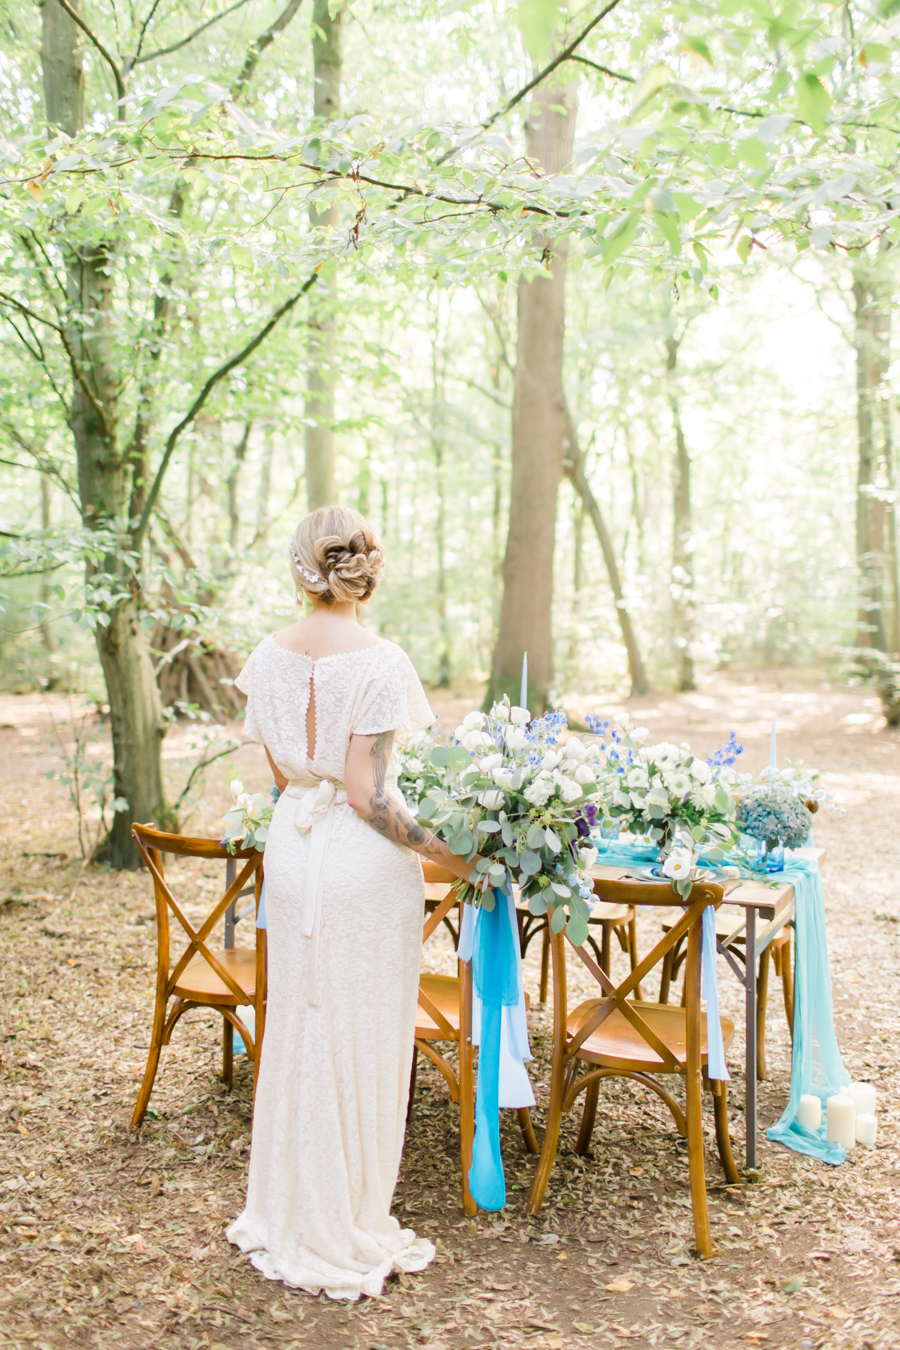 Beautiful and delicate blue tones for a woodland wedding styled by Sara's Events Flowers. Photo credit Natalie Stevenson Photography (12)